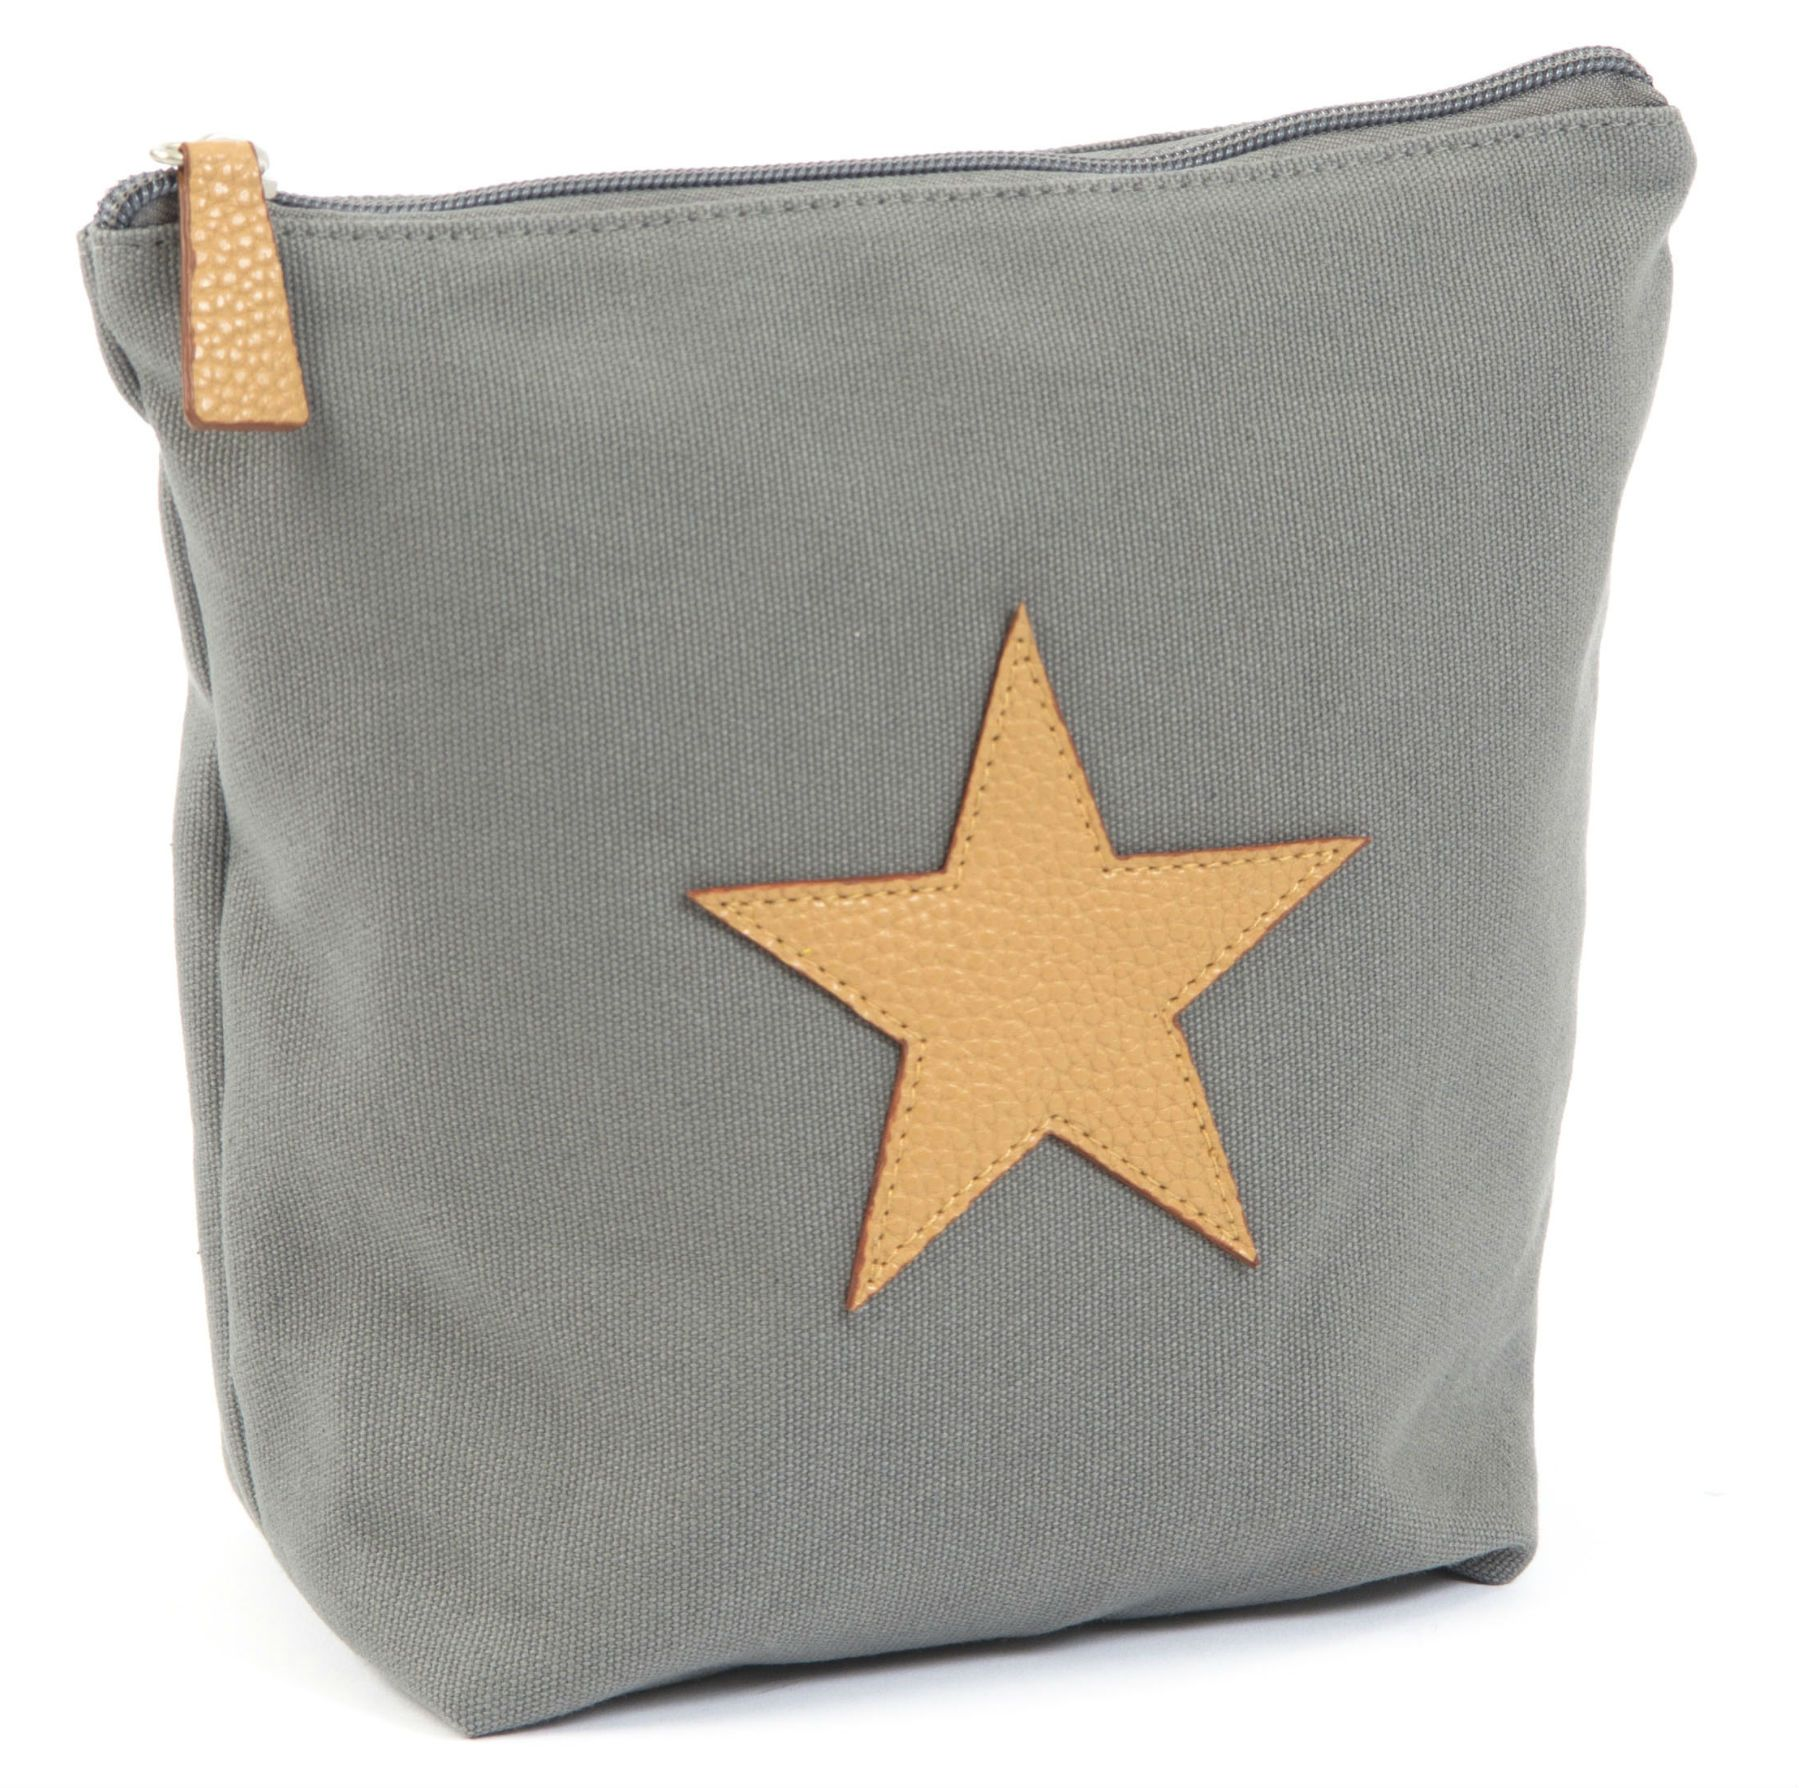 Toilettaske fra Smallstuff - Dark Grey Kanvas & Leather Star - Stor